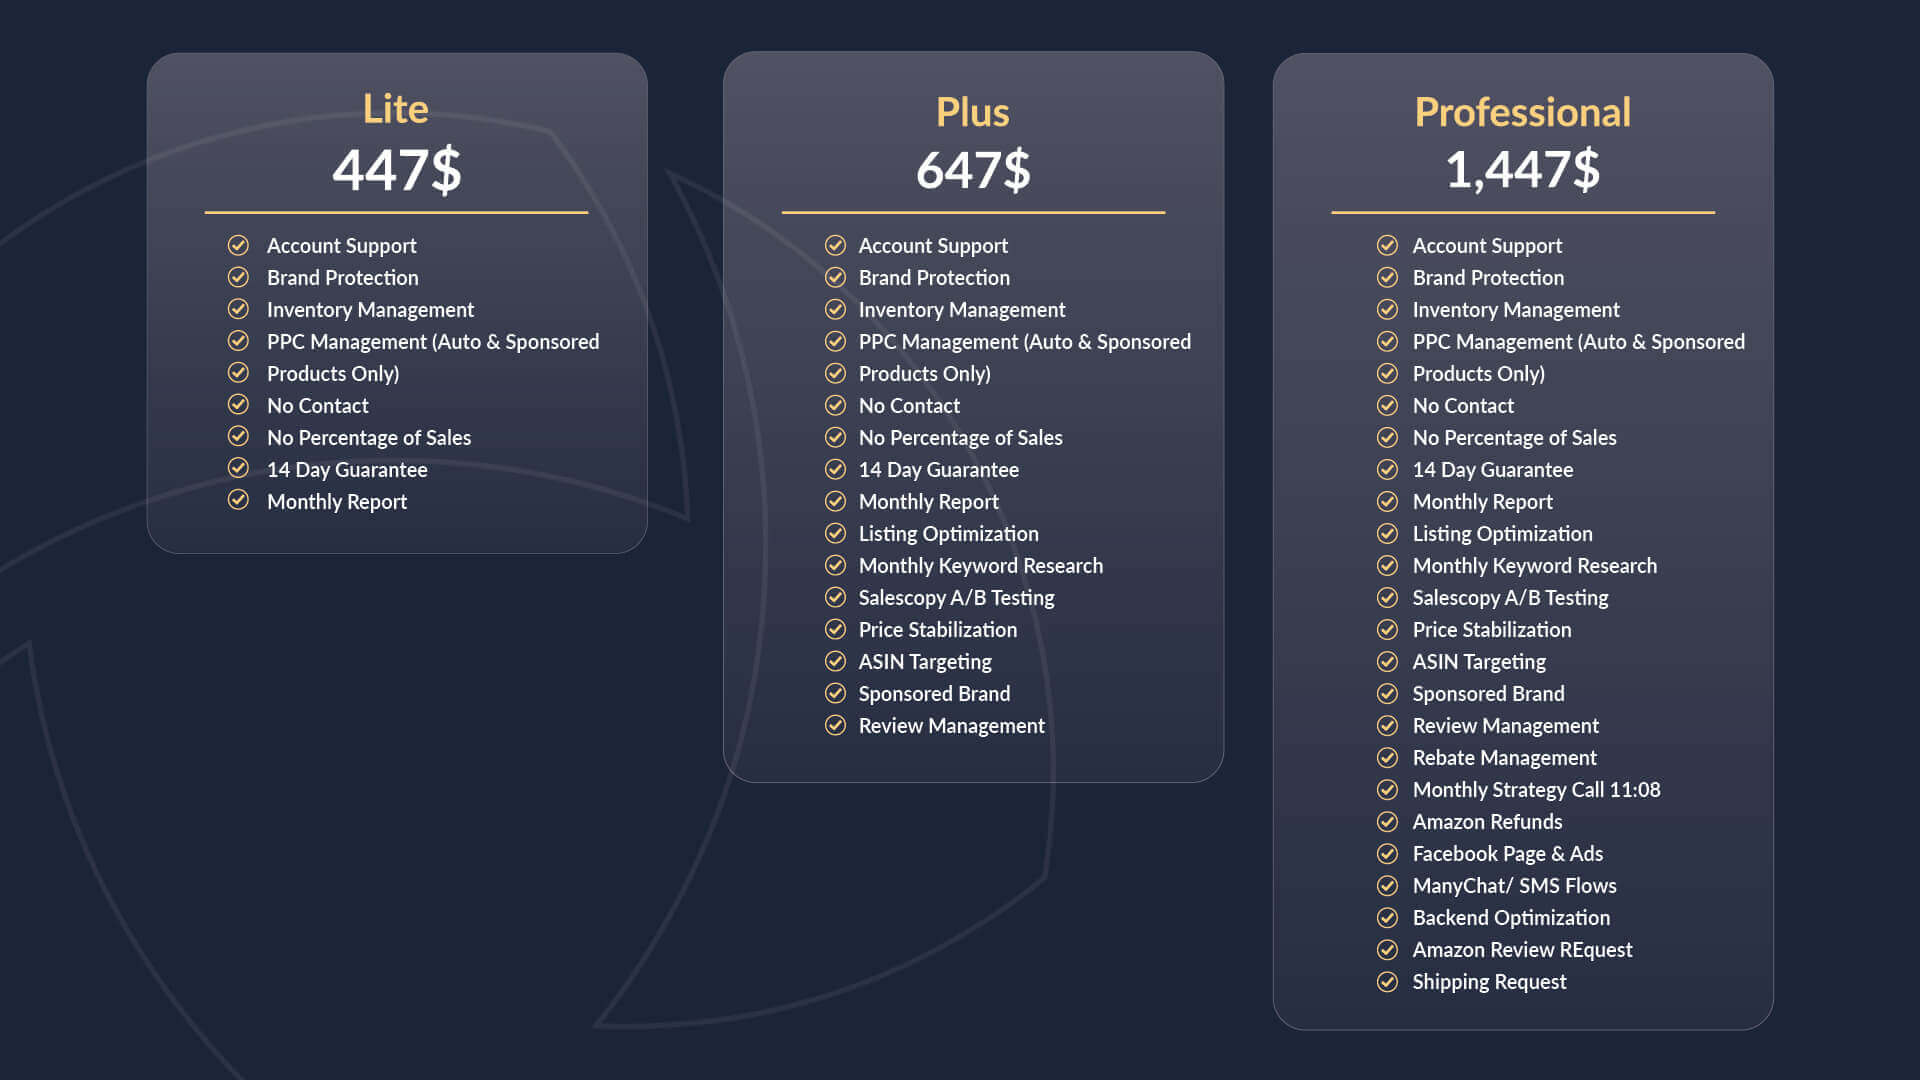 Comparison of all services offered within the Lite, Plus, and Professional Agency packages.